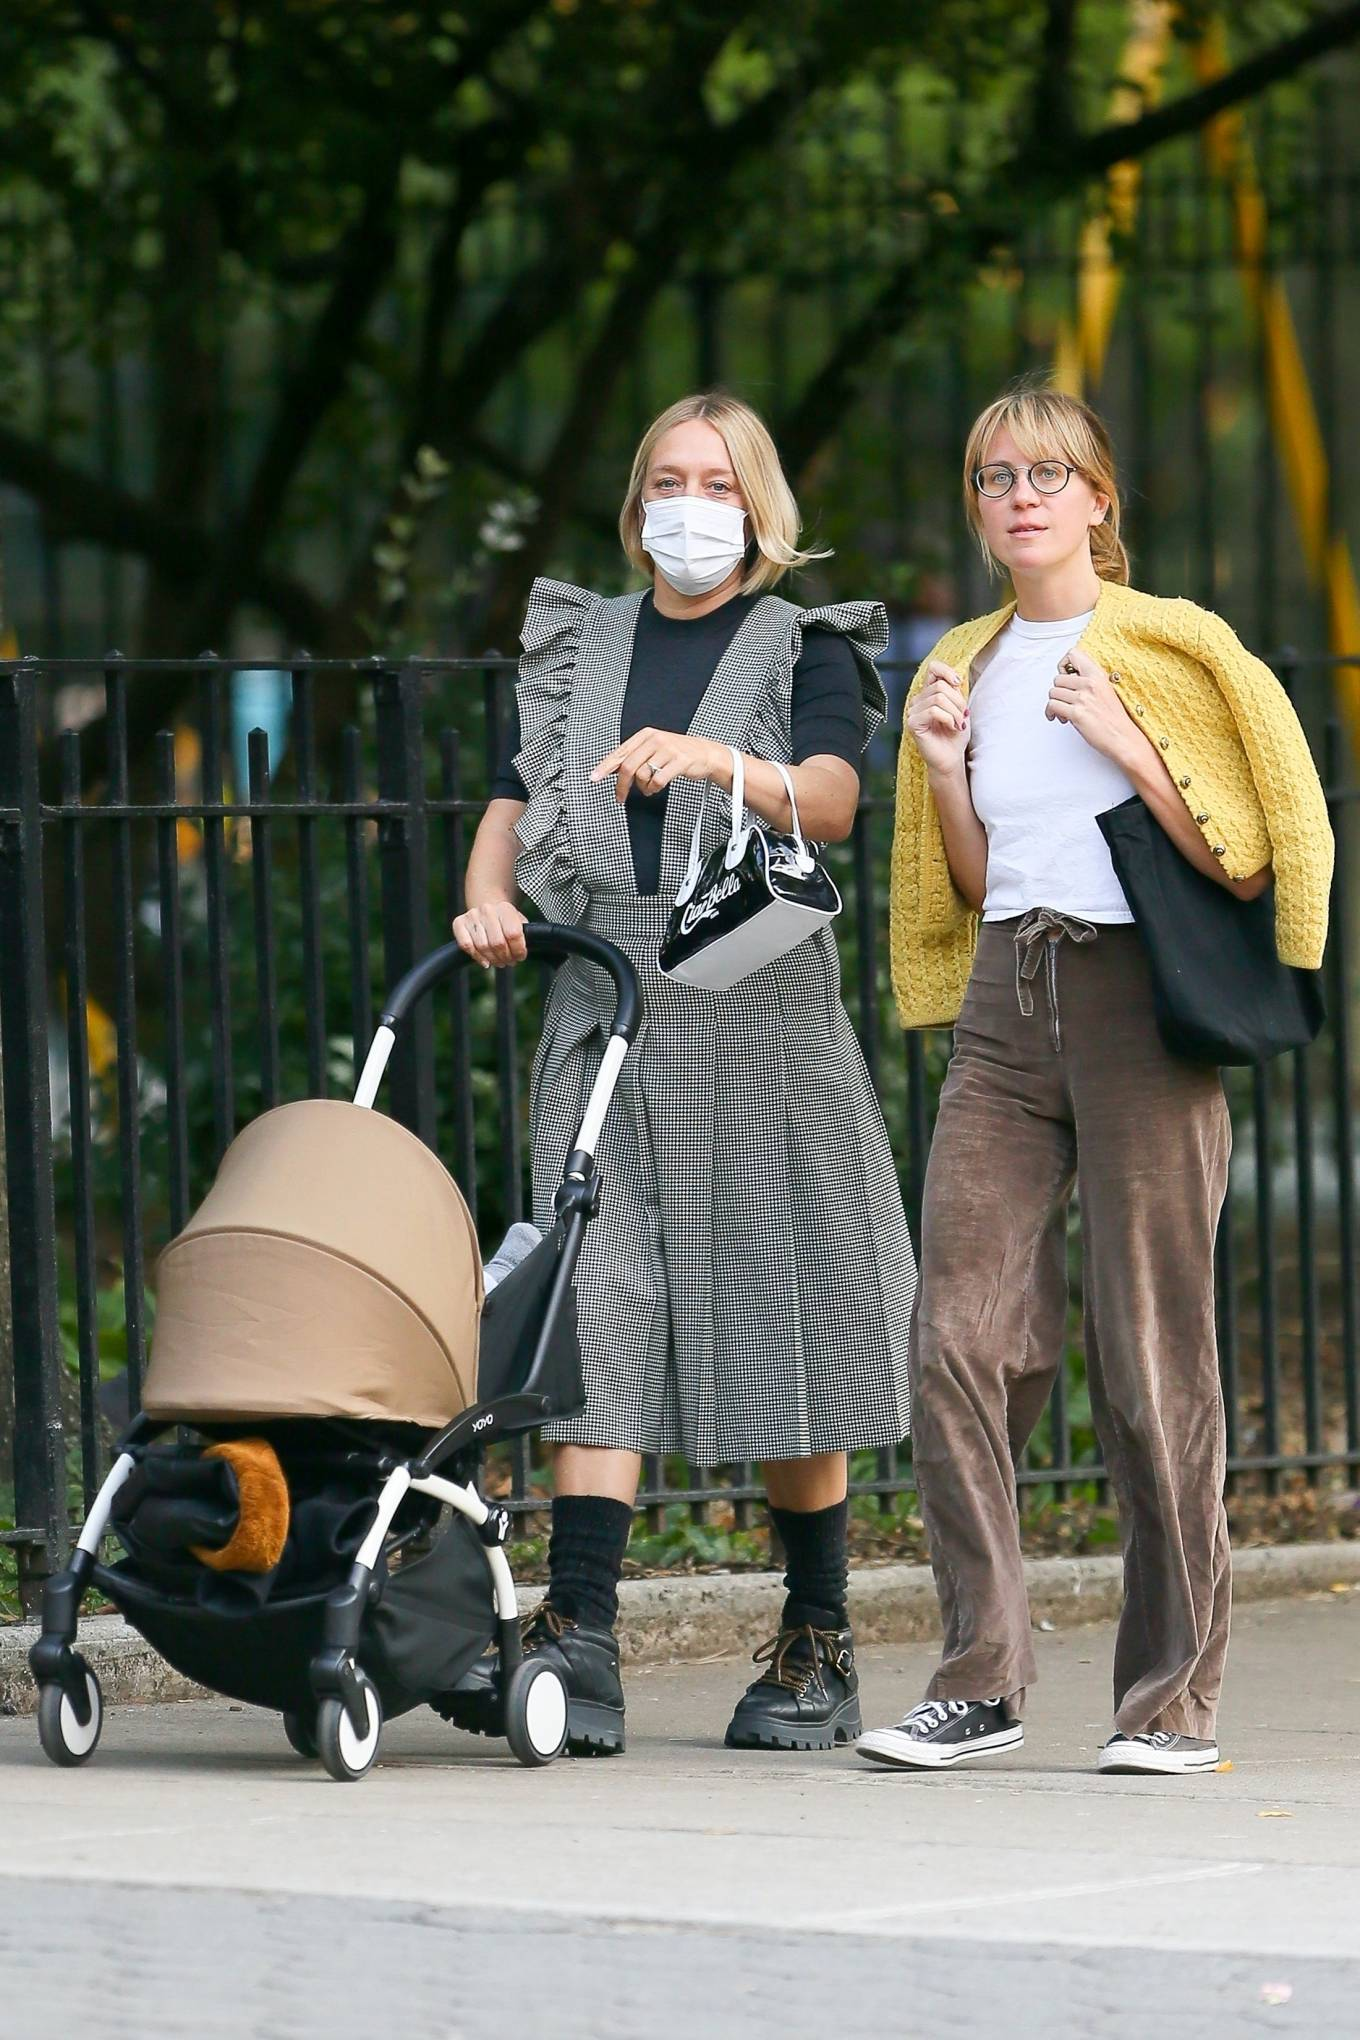 Chloe Sevigny 2020 : Chloe Sevigny – Out for a walk with her baby and a friend in New York-07